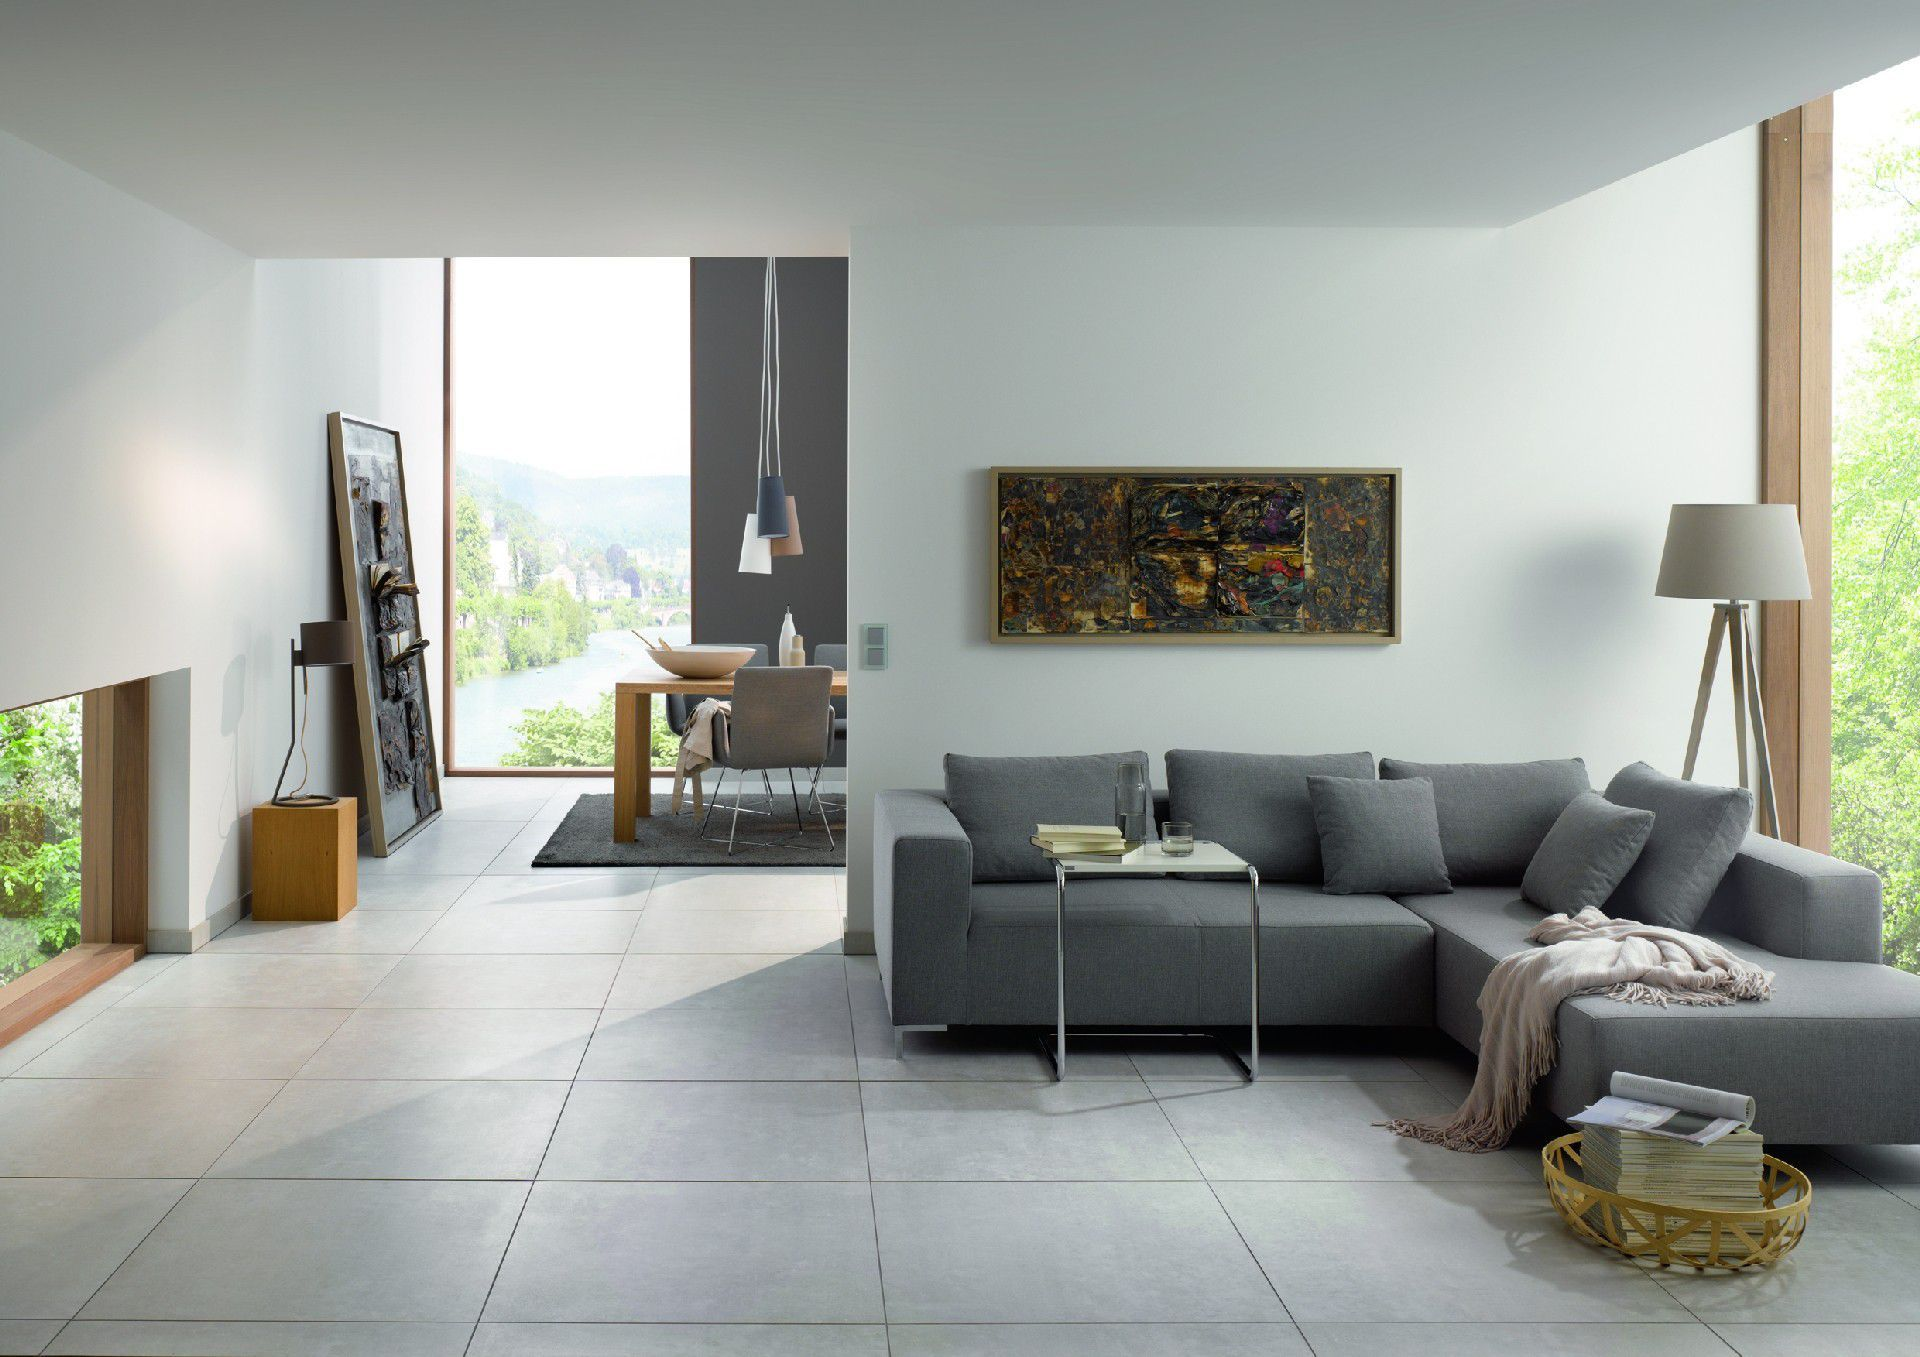 Indoor Tile / Living Room / Floor / Porcelain Stoneware ...